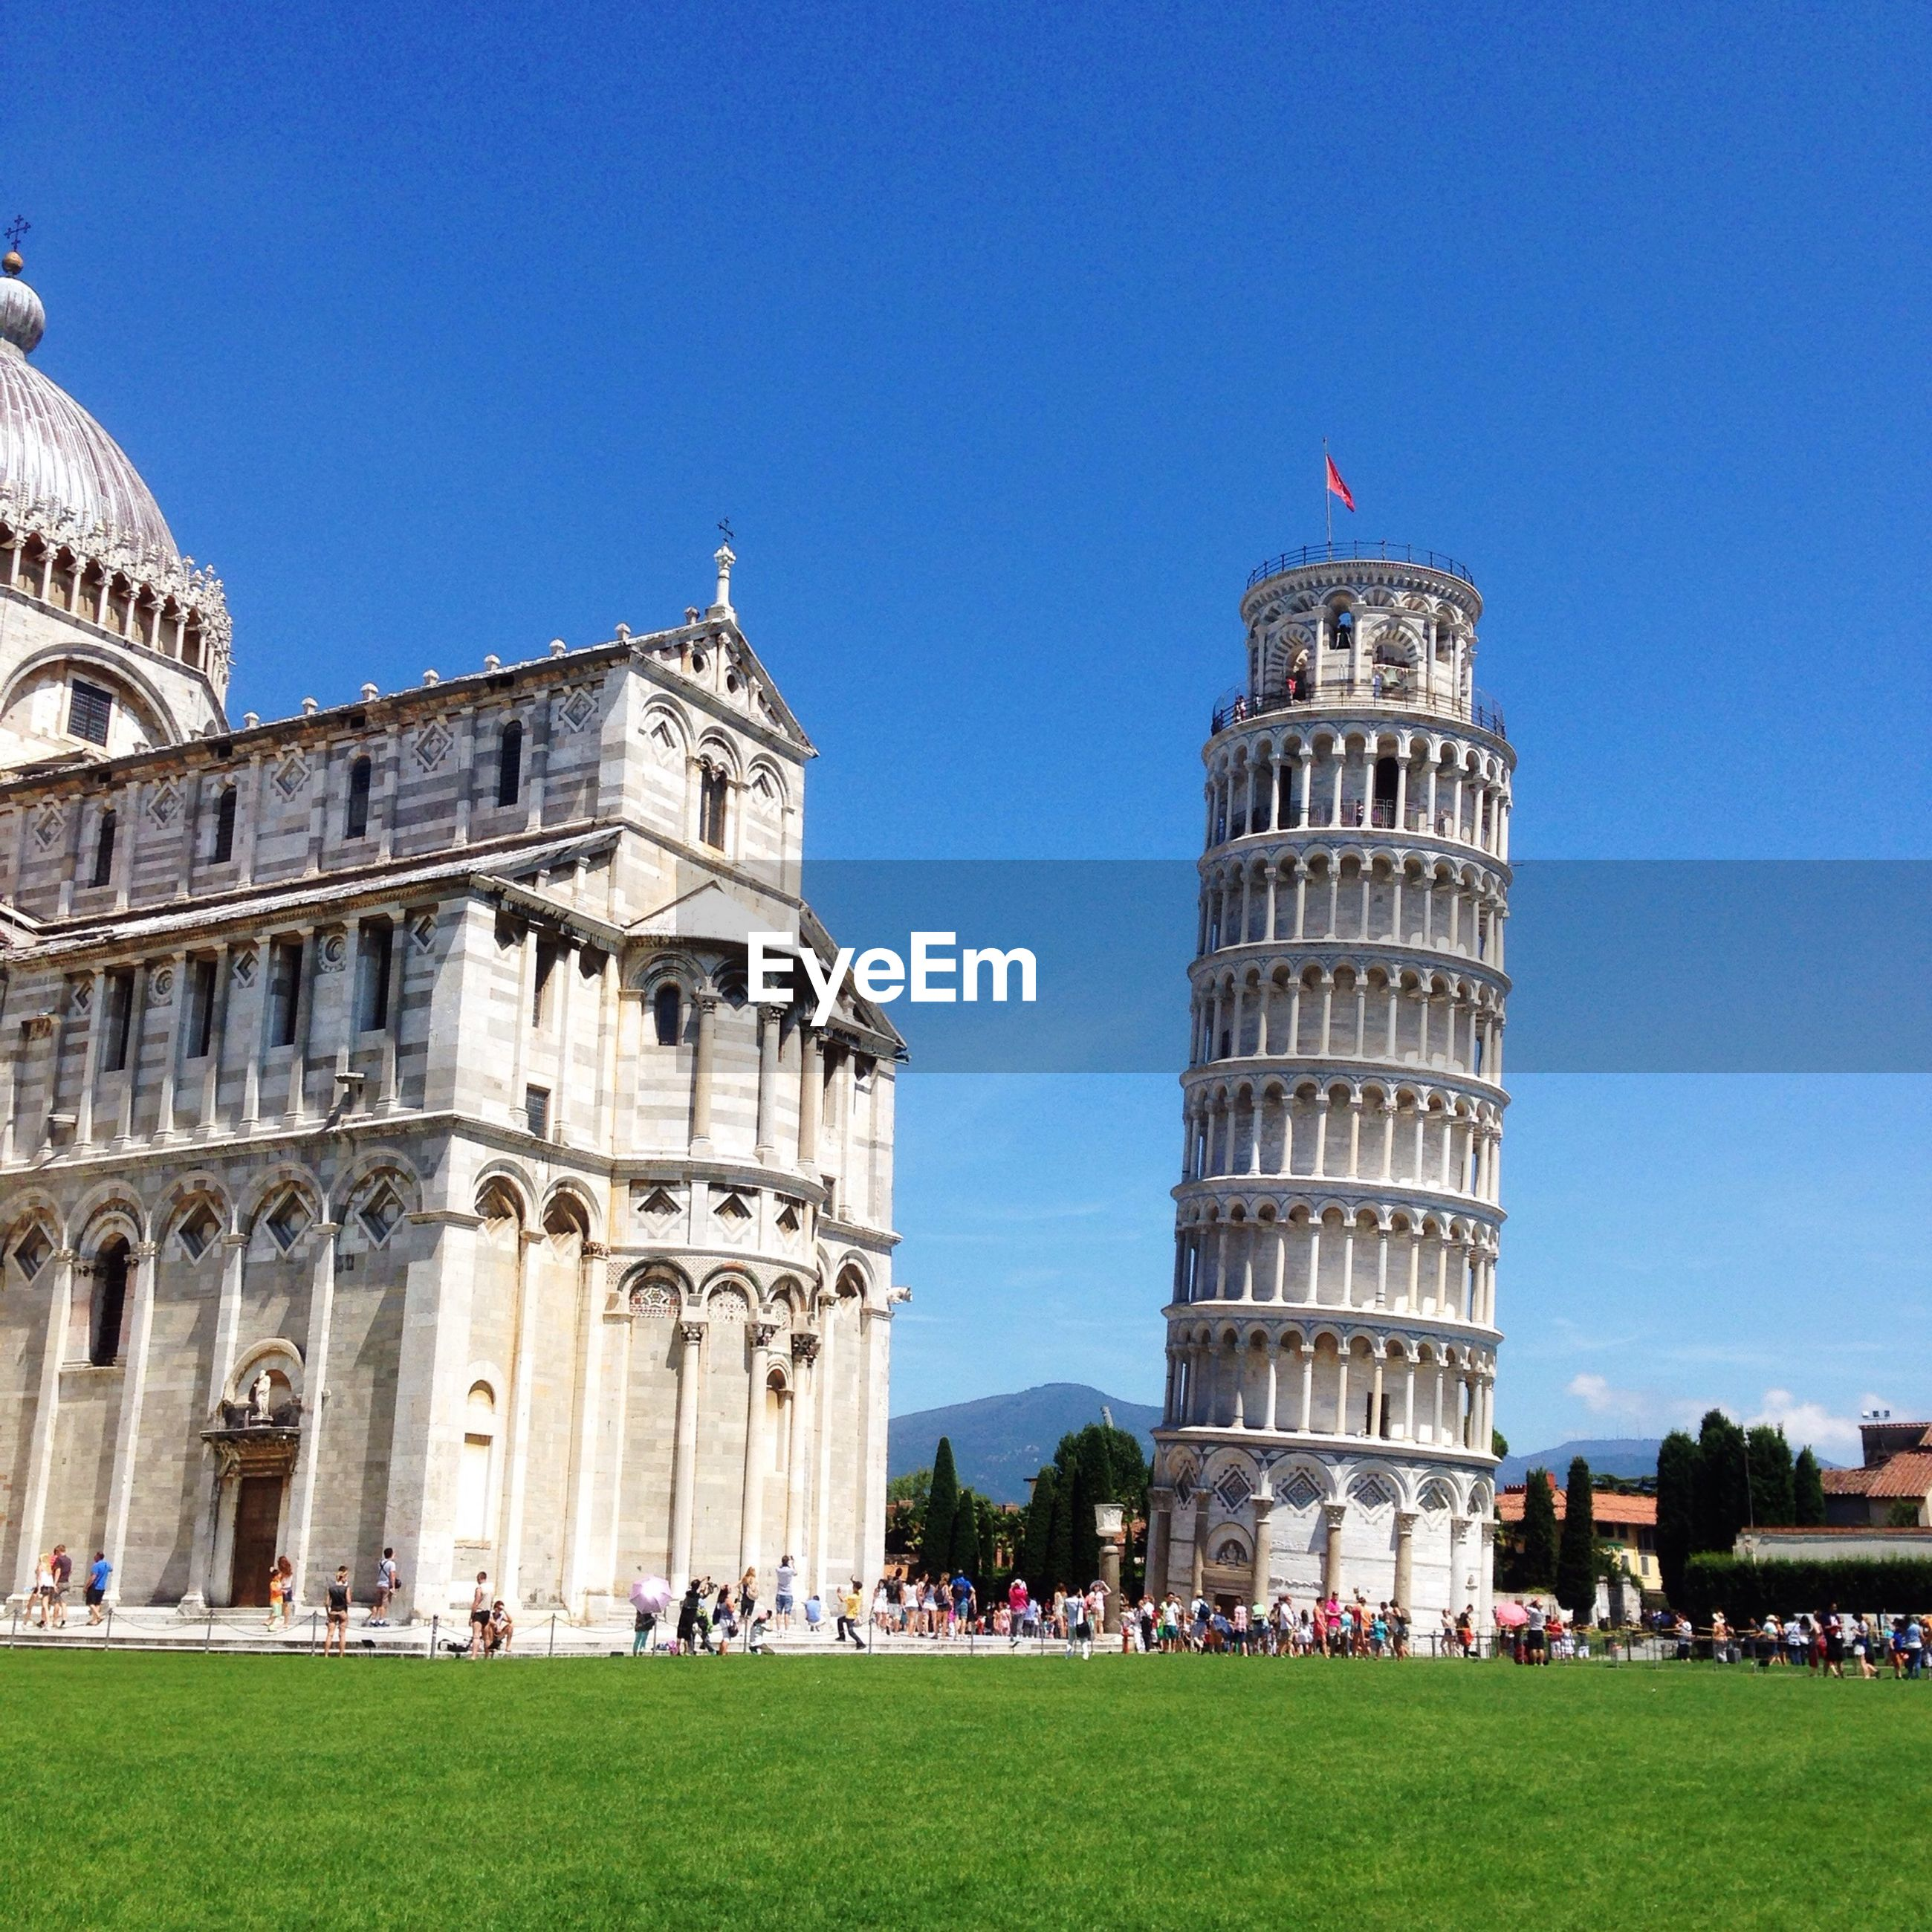 Leaning tower of pisa and the duomo